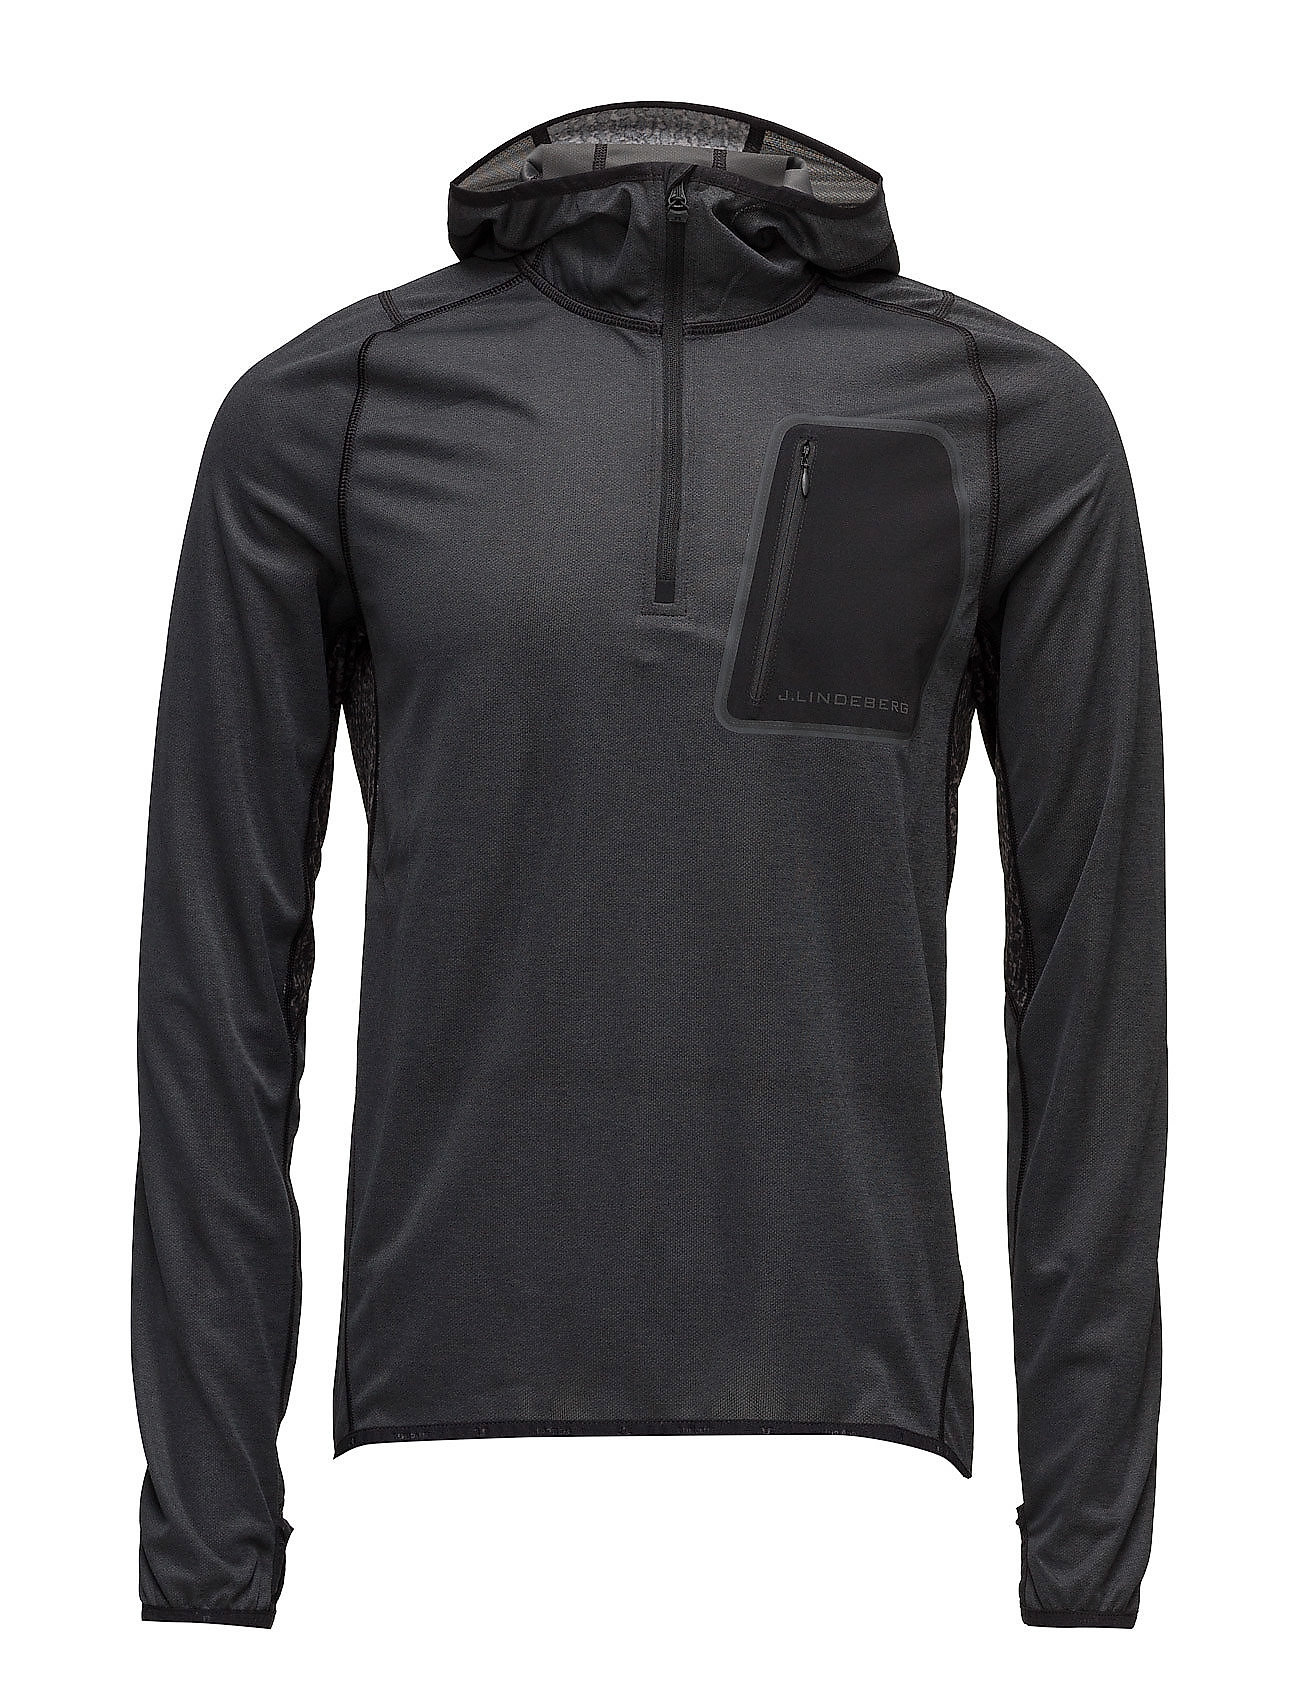 M Running Hoodie Elements Jer. J. Lindeberg Sports sweatshirts til Herrer i